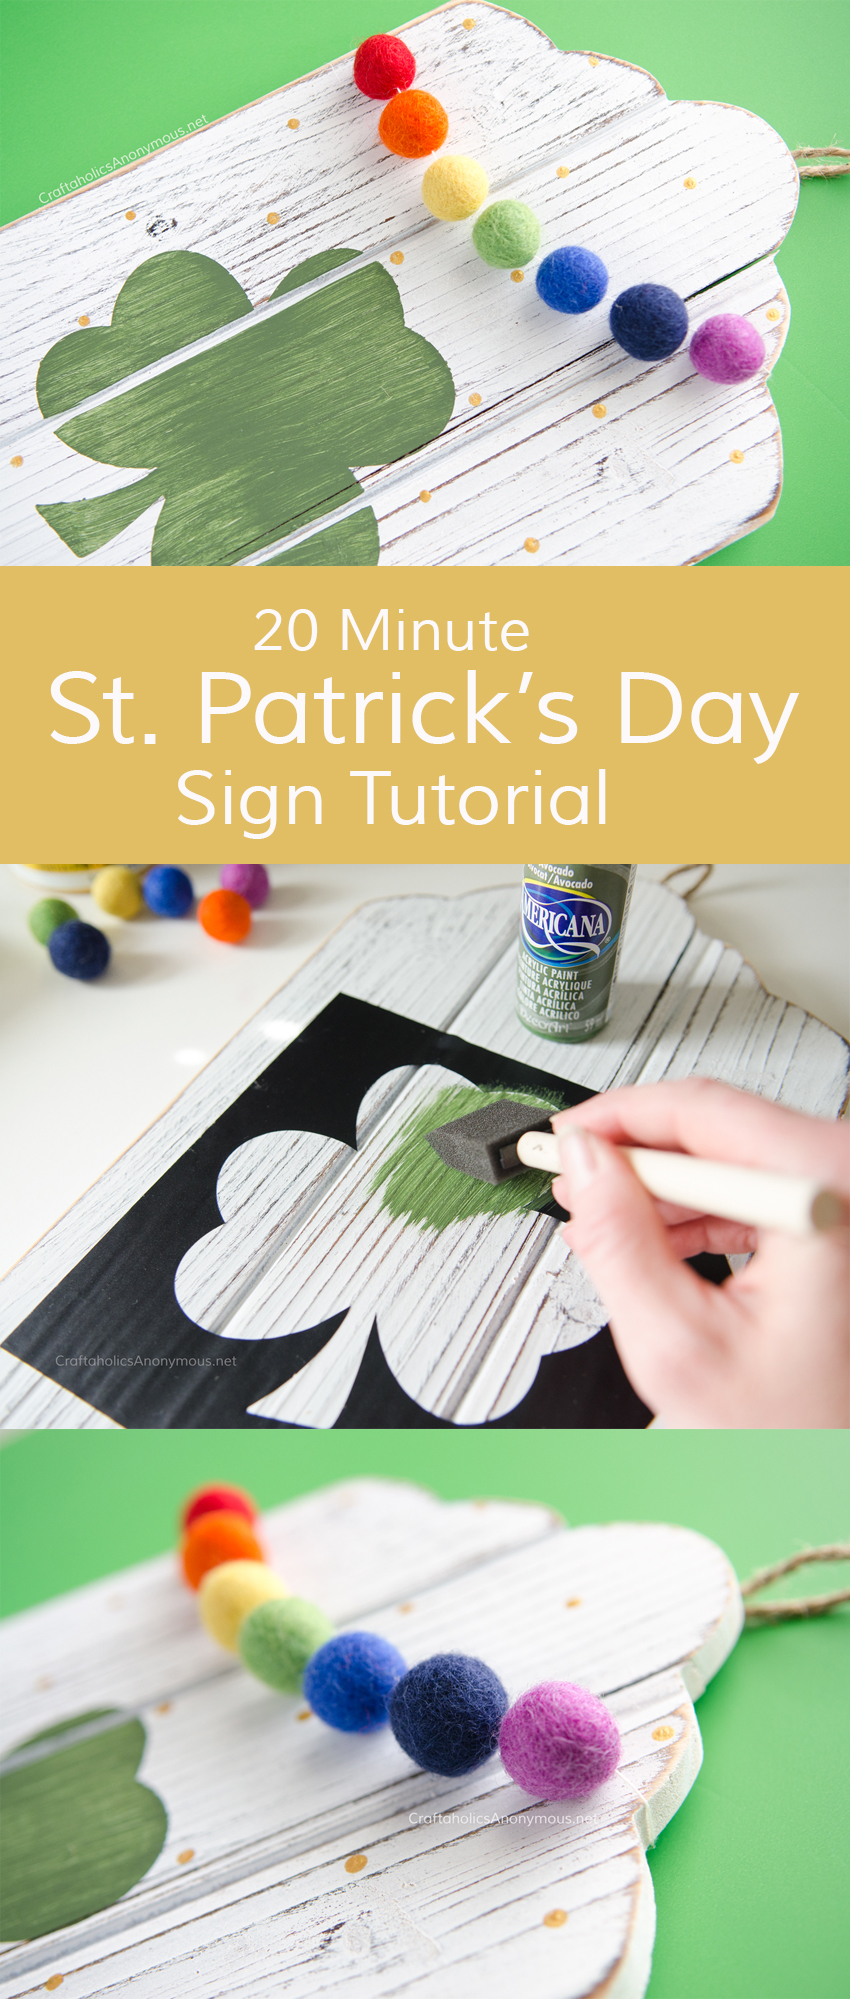 DIY St Patrick's Day sign tutorial :: Easy craft idea decor